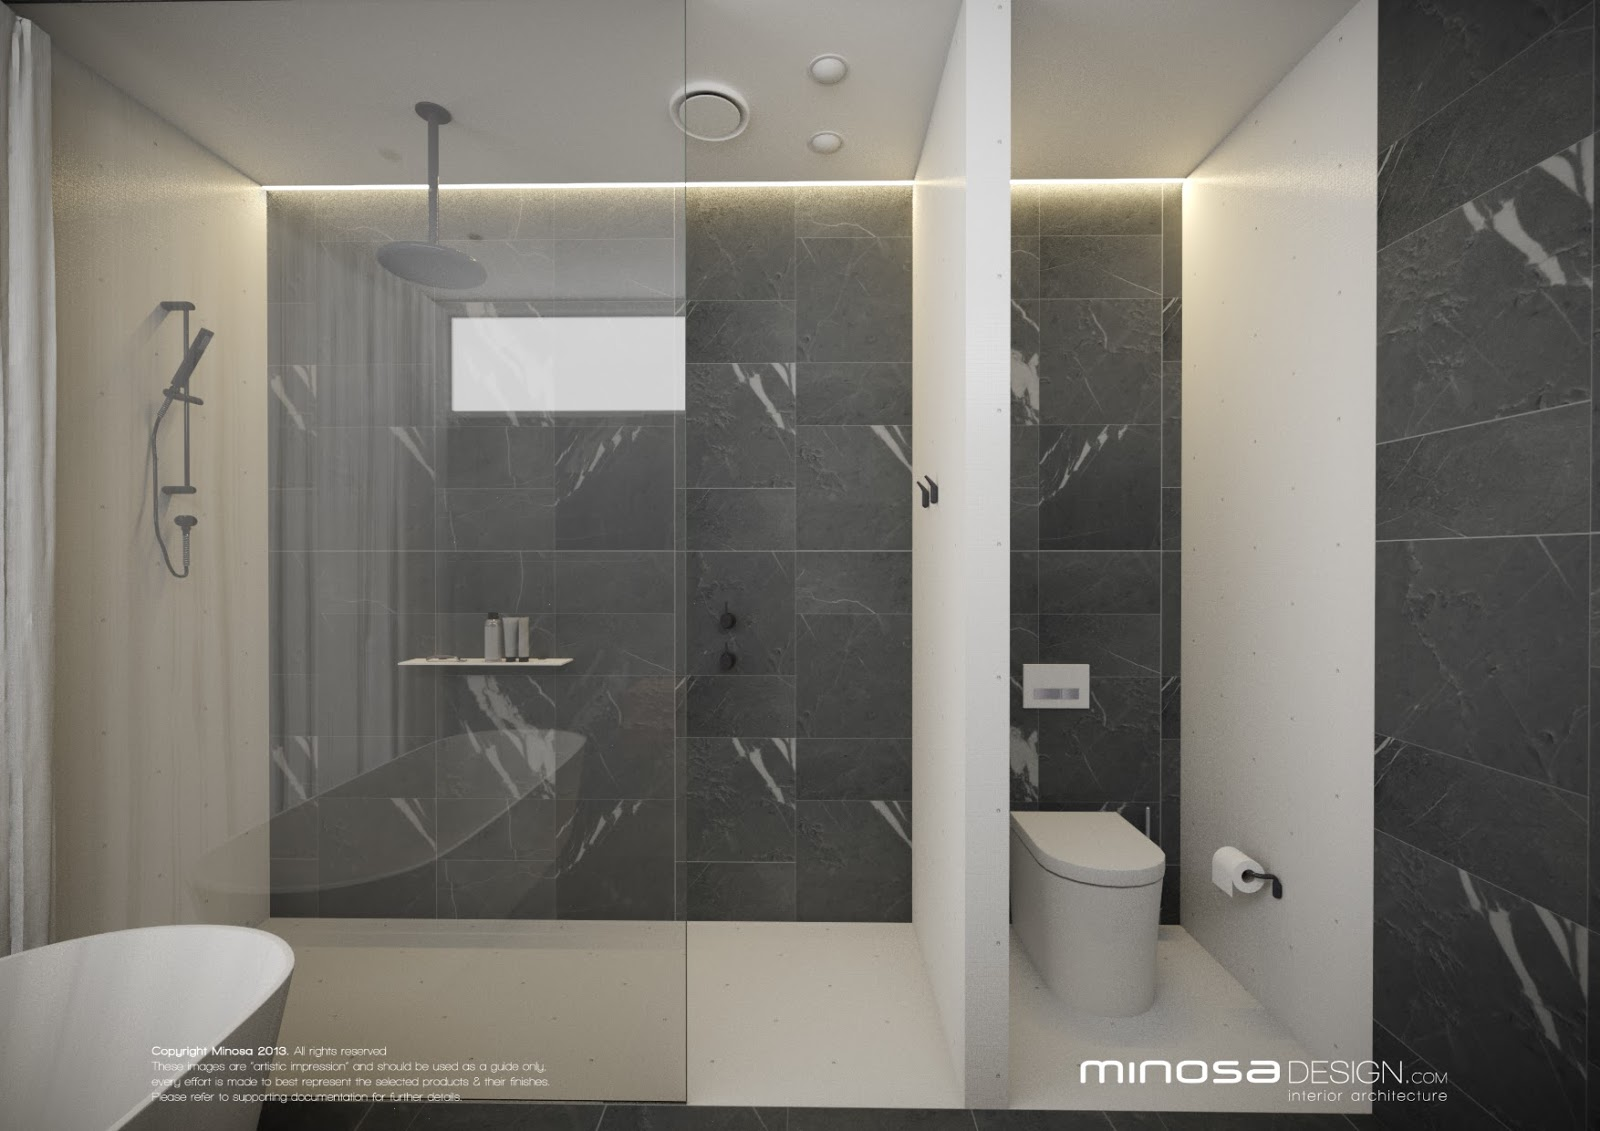 Minosa modern bathroom design to share for New bathroom ideas for 2012